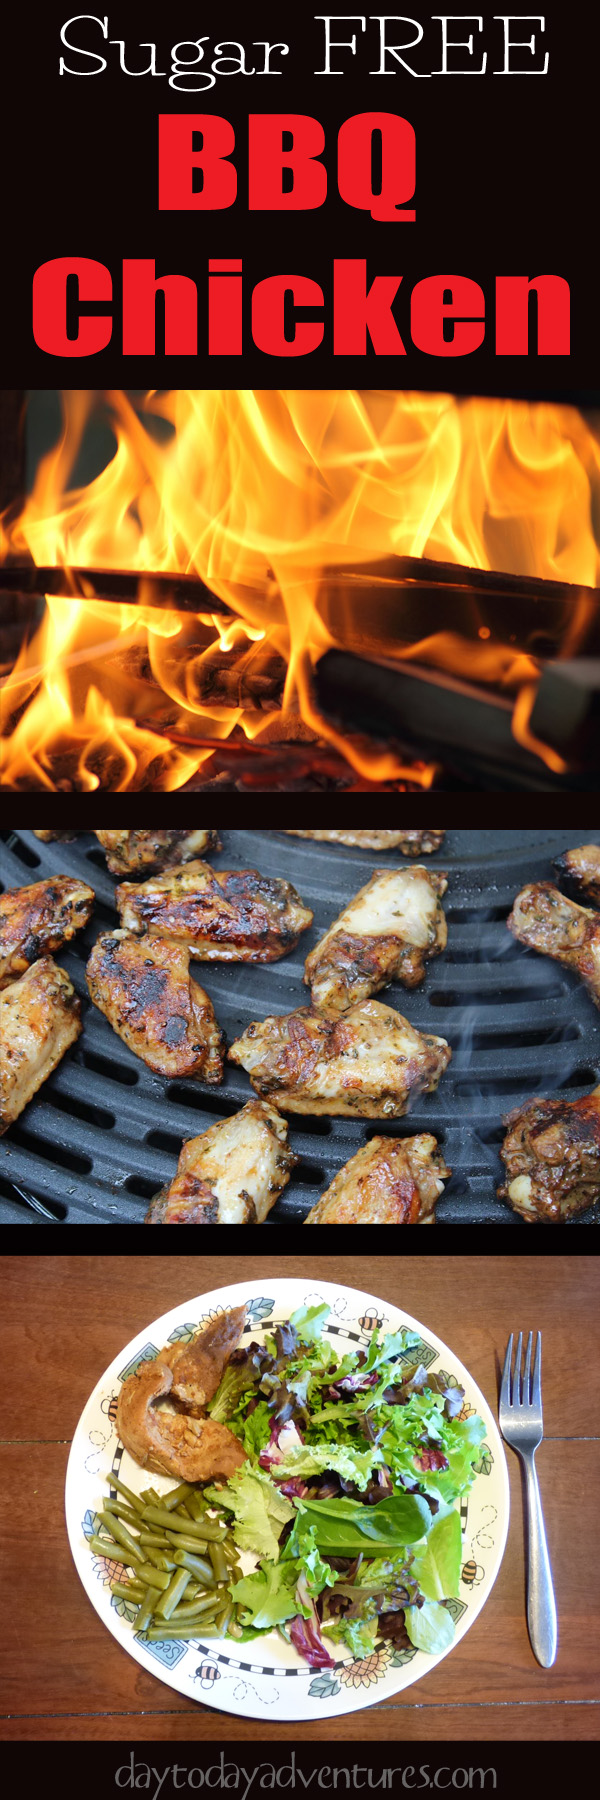 Love BBQ but hate the high carb count?  Me too!  Check out this sugar freee recipe for BBQ Chicken.  Great freezer meal and it works in the slow cooker or skillet! - DaytoDayAdventures.com